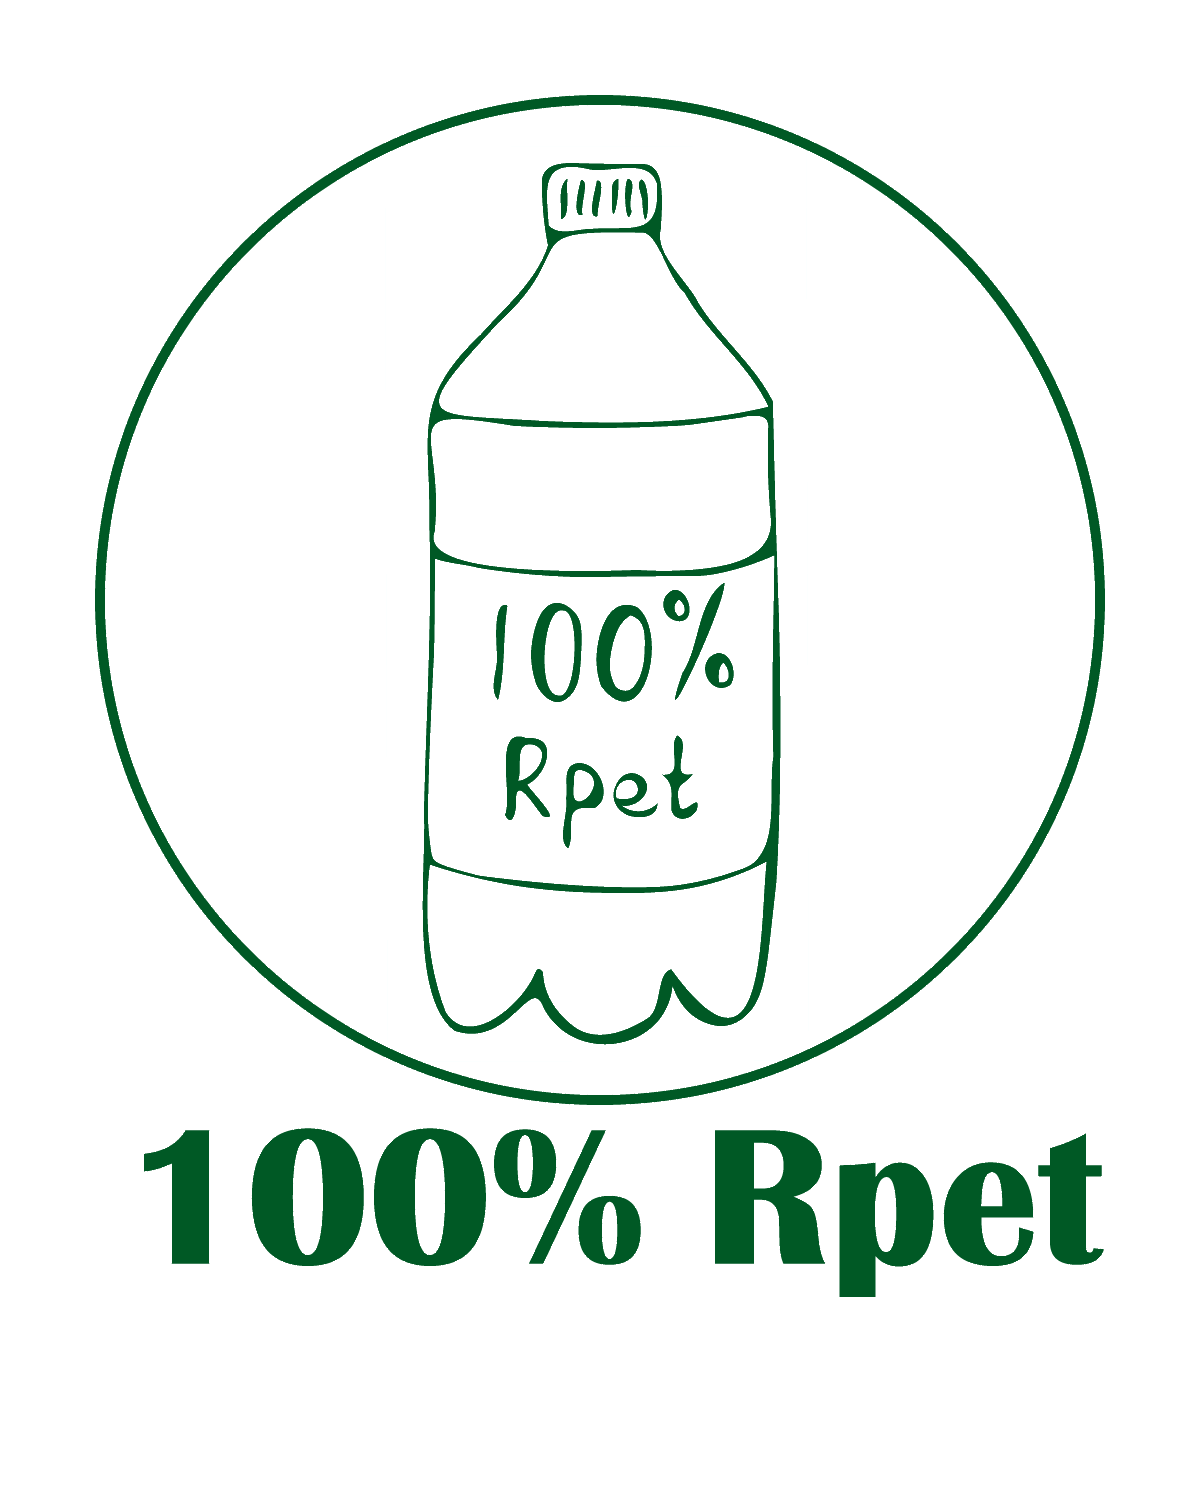 The Green Bundle 100% Rpet Logo